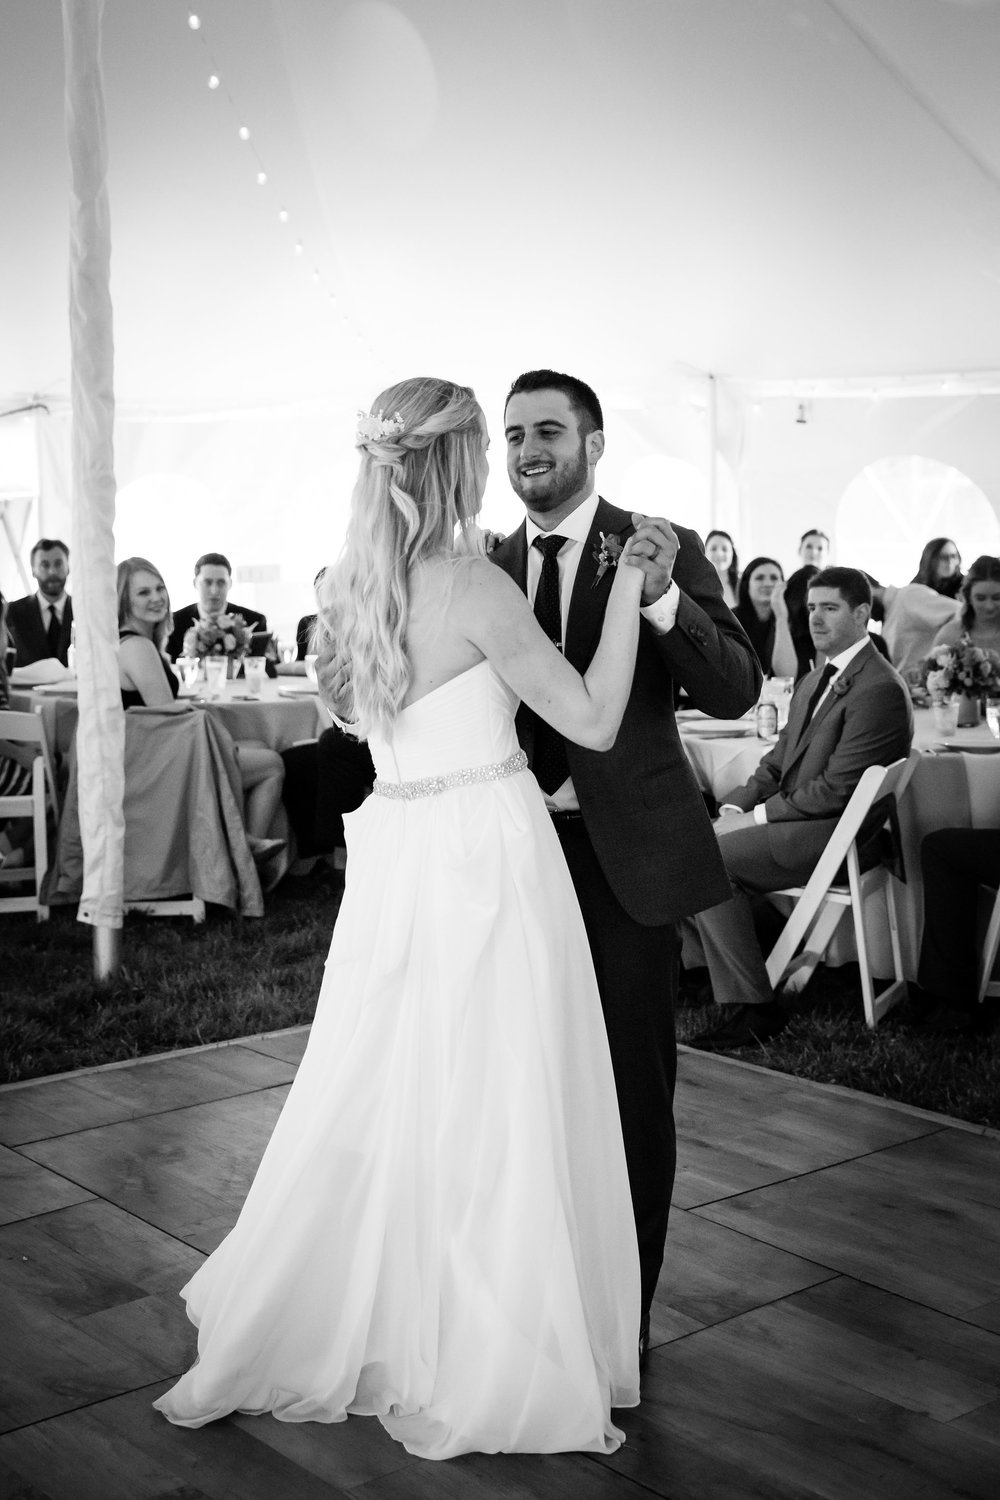 brielle-davis-events-weatherly-farm-waterfront-wedding-reception-first-dance.jpg